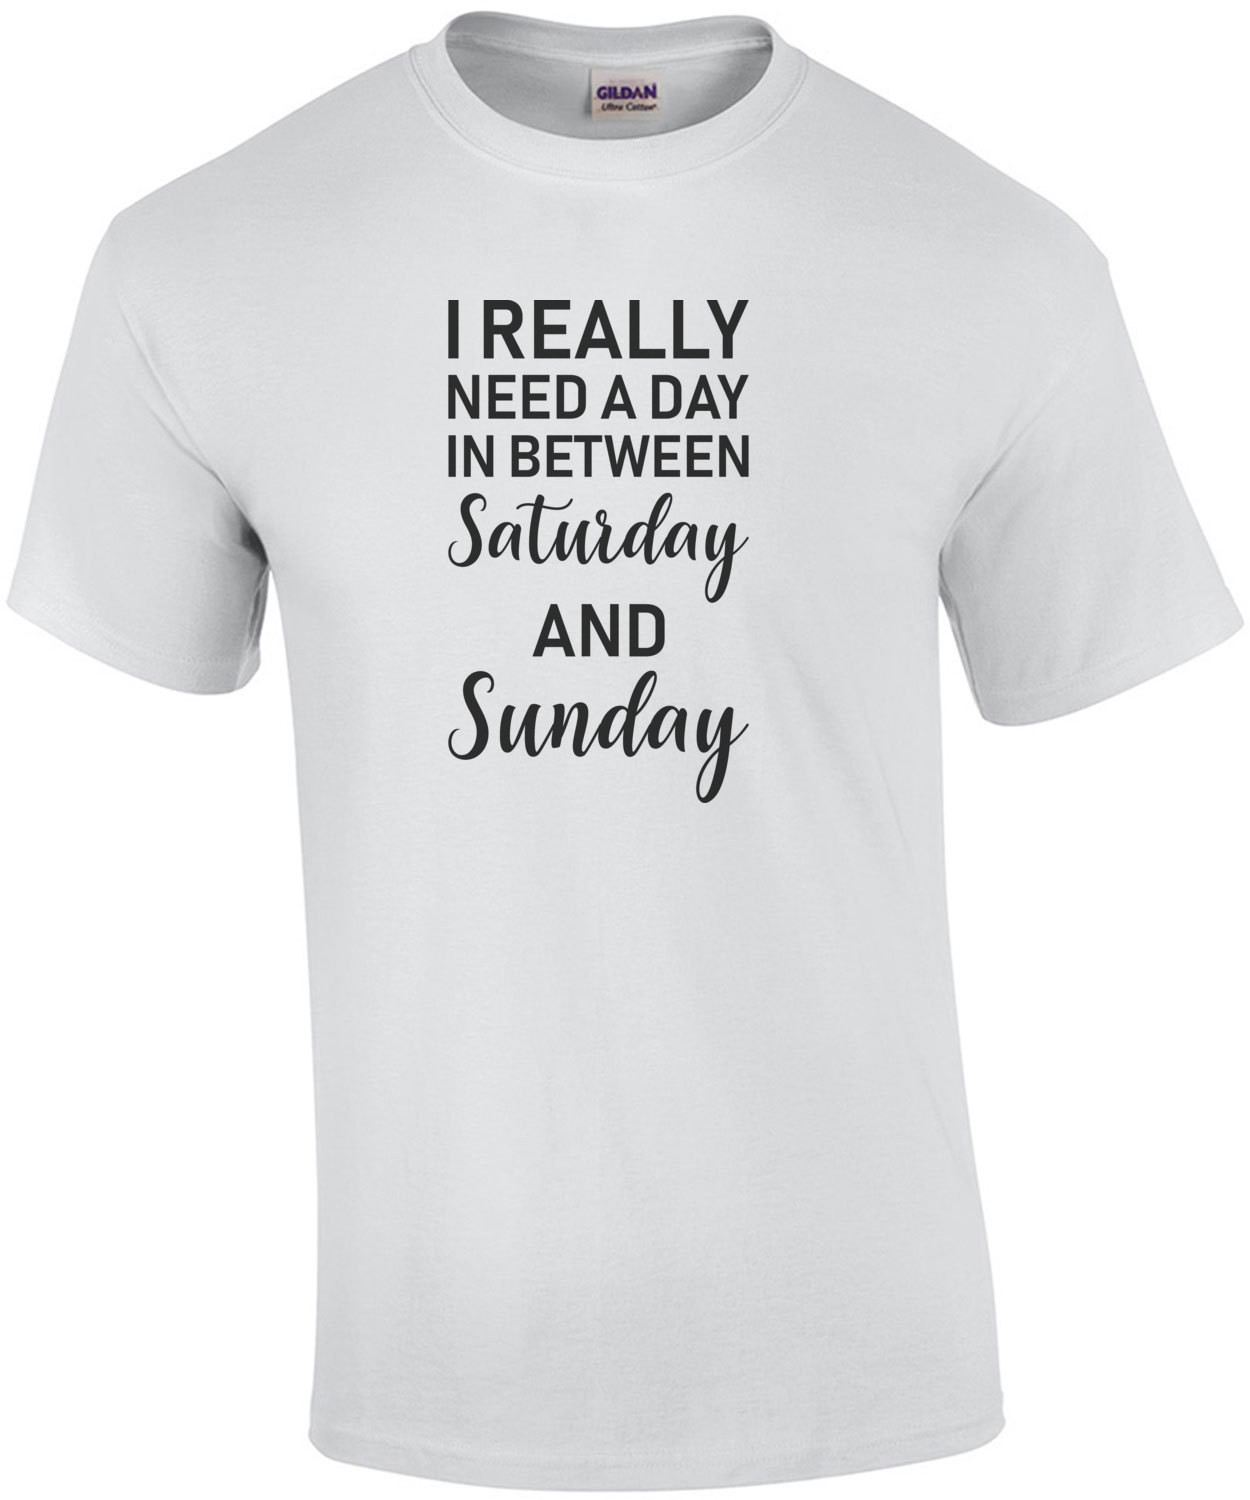 I really need a day in between saturday and sunday - sarcastic t-shirt